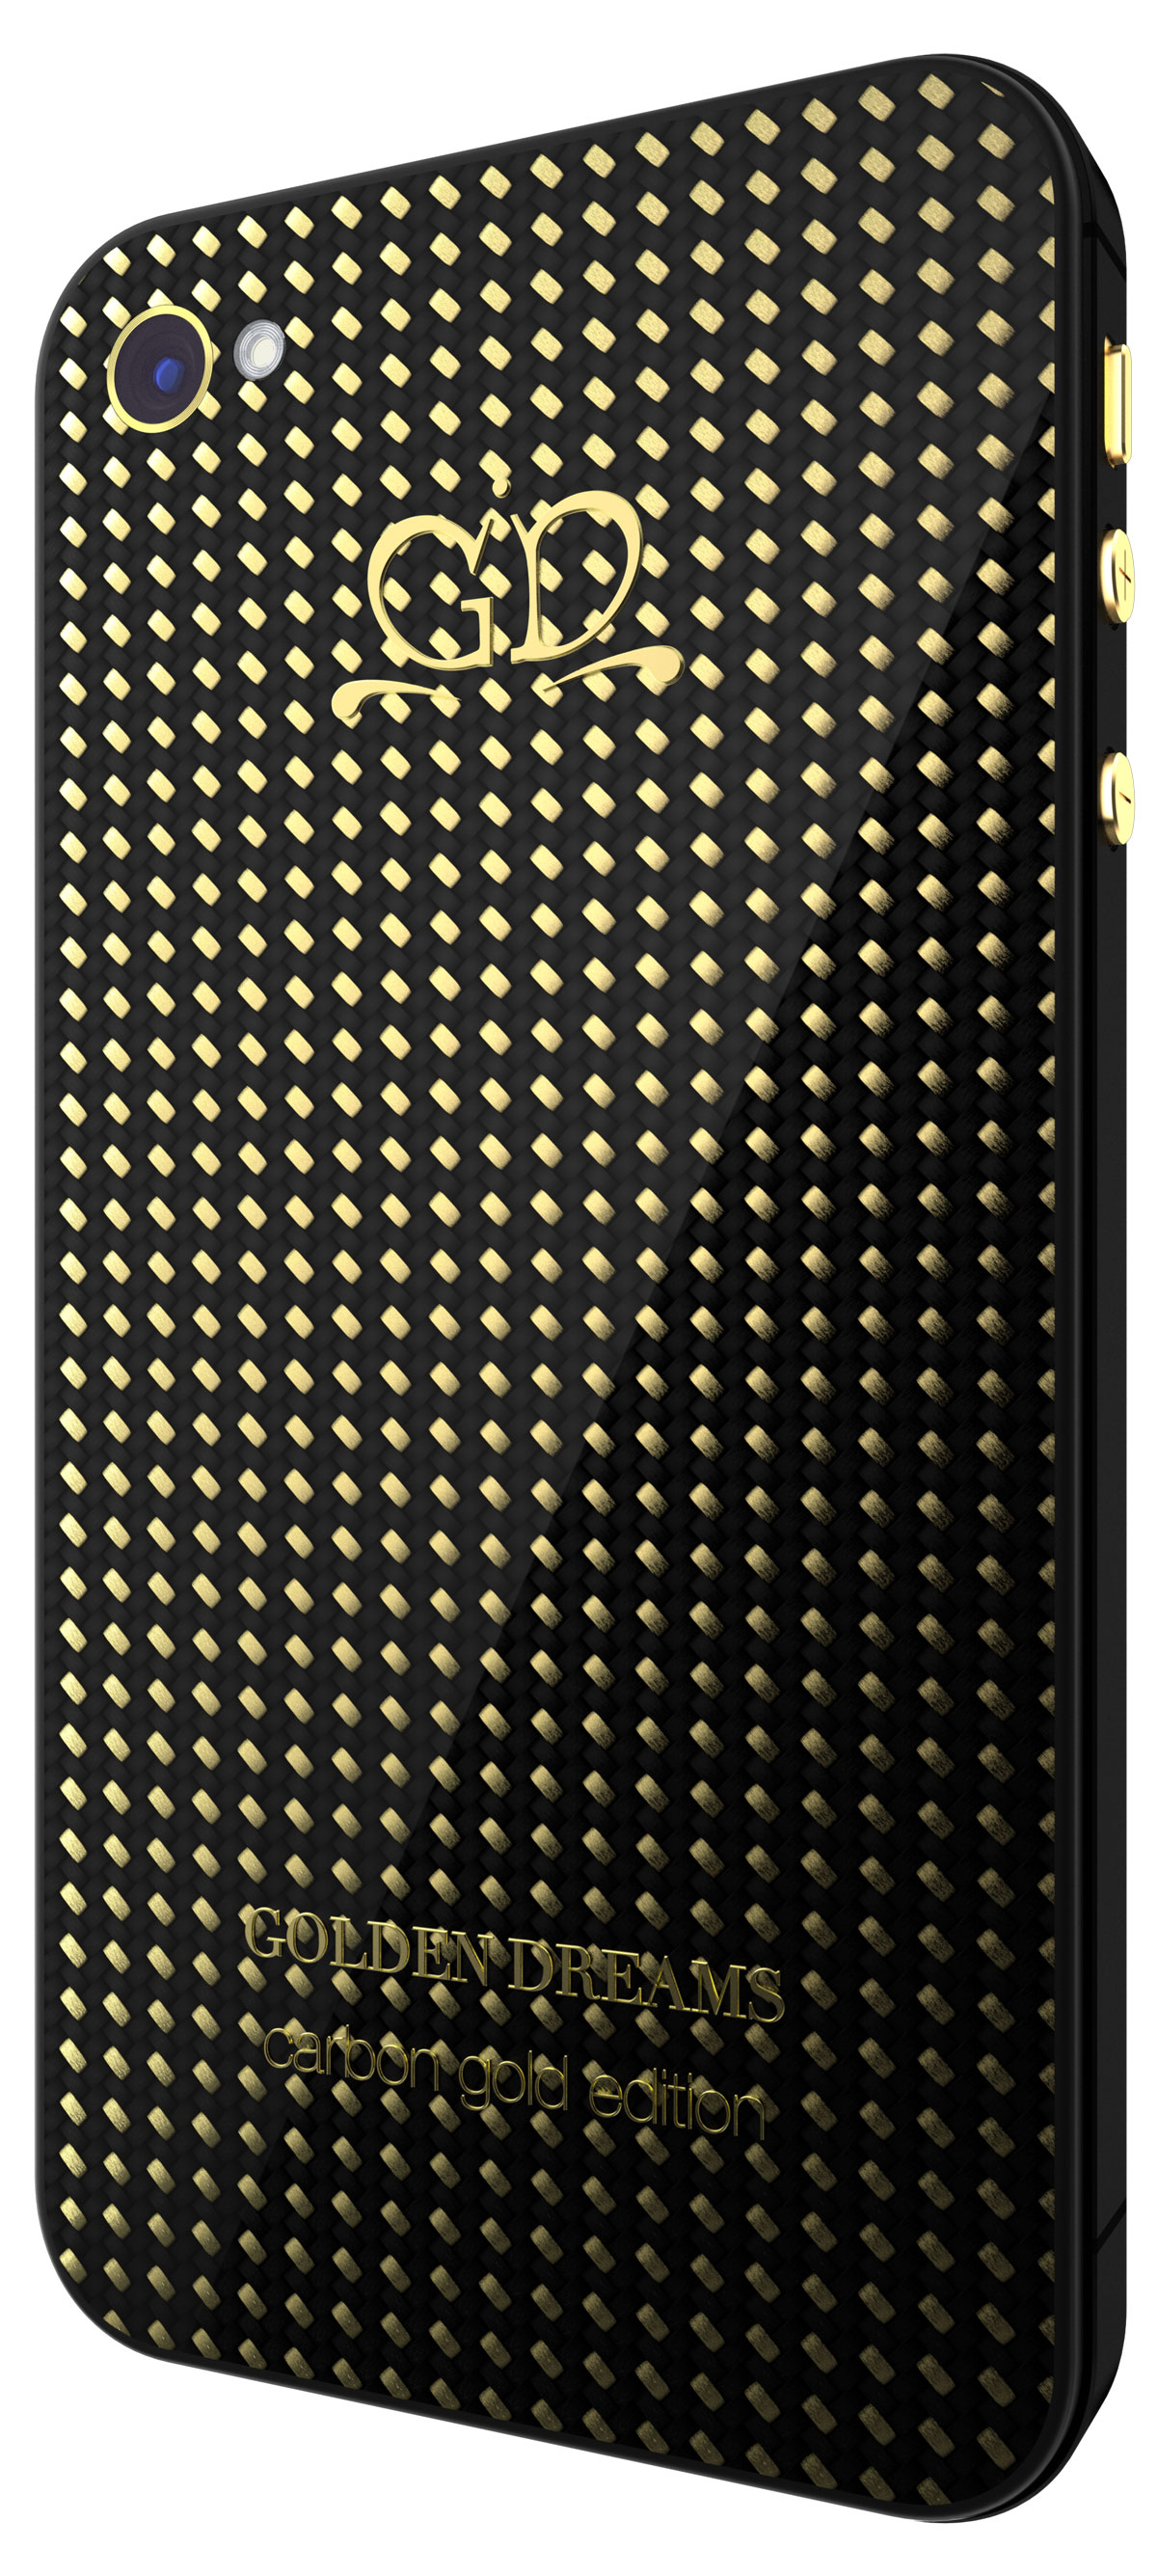 Golden Dreams Carbon Gold Luxury Composite Material